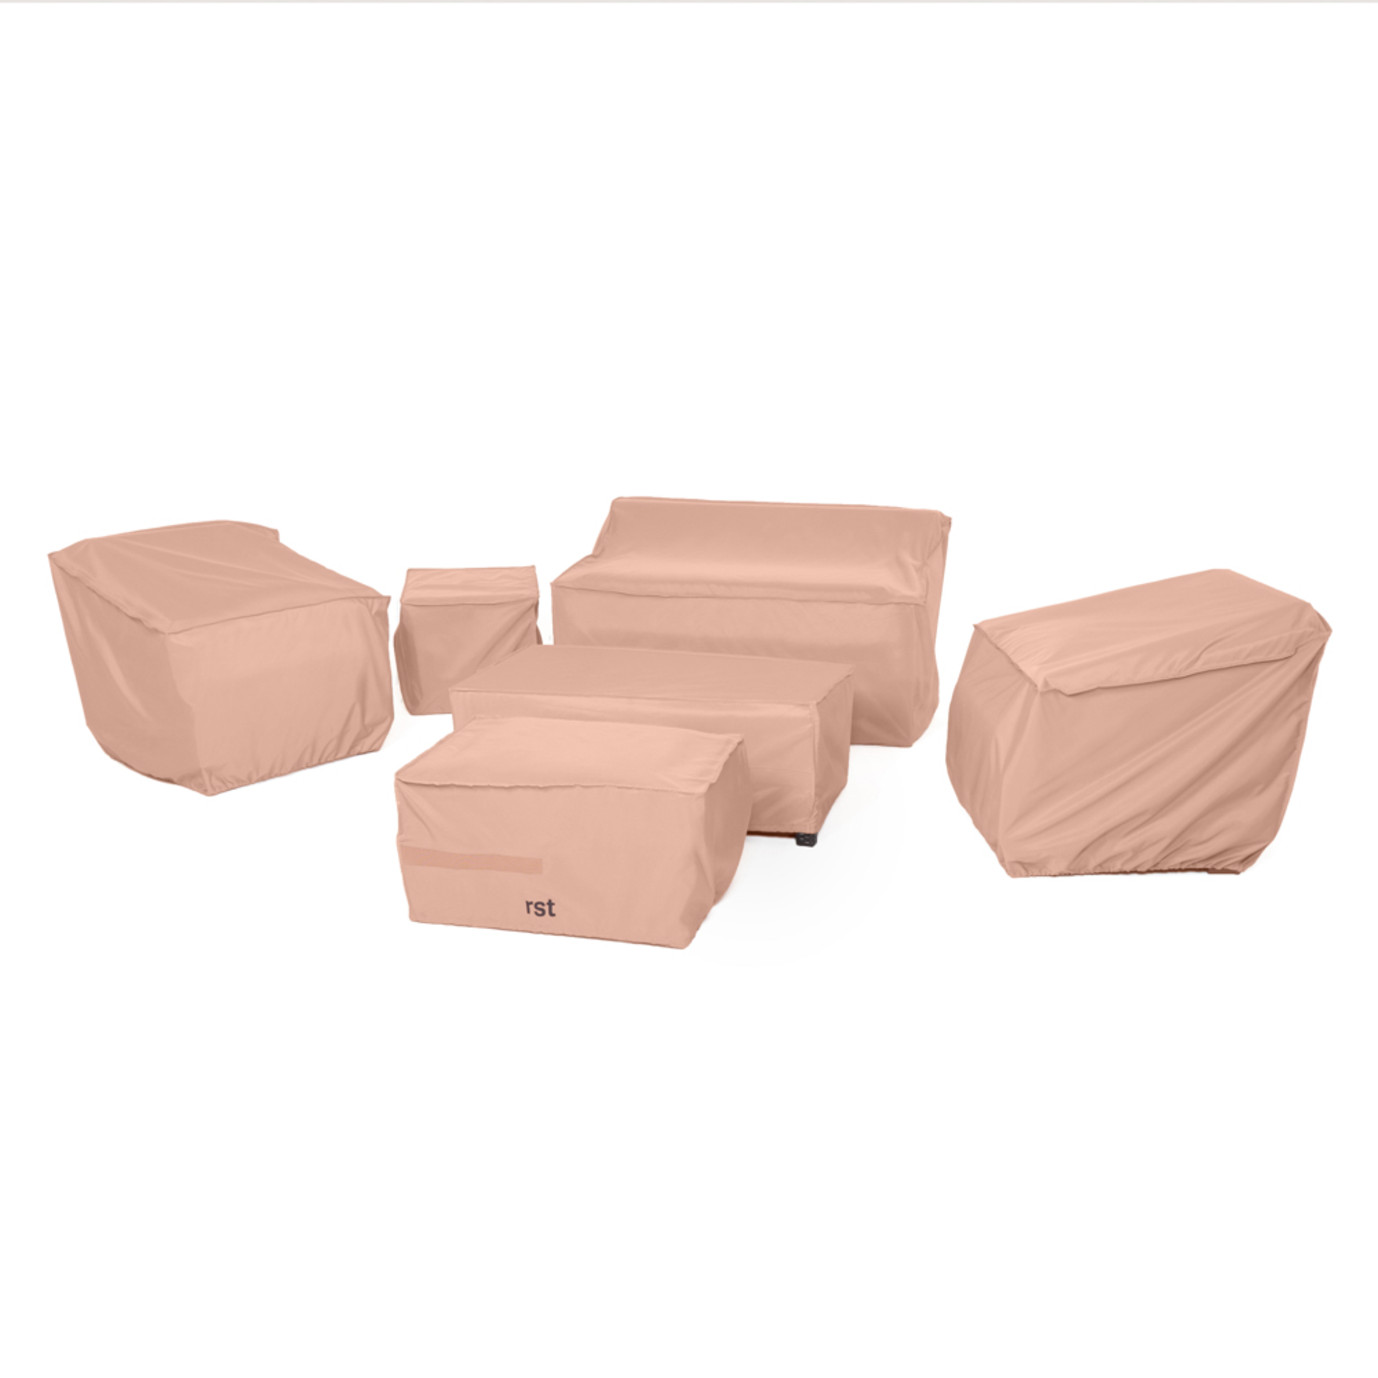 Modular Outdoor 6pc Love and Club Furniture Cover Set